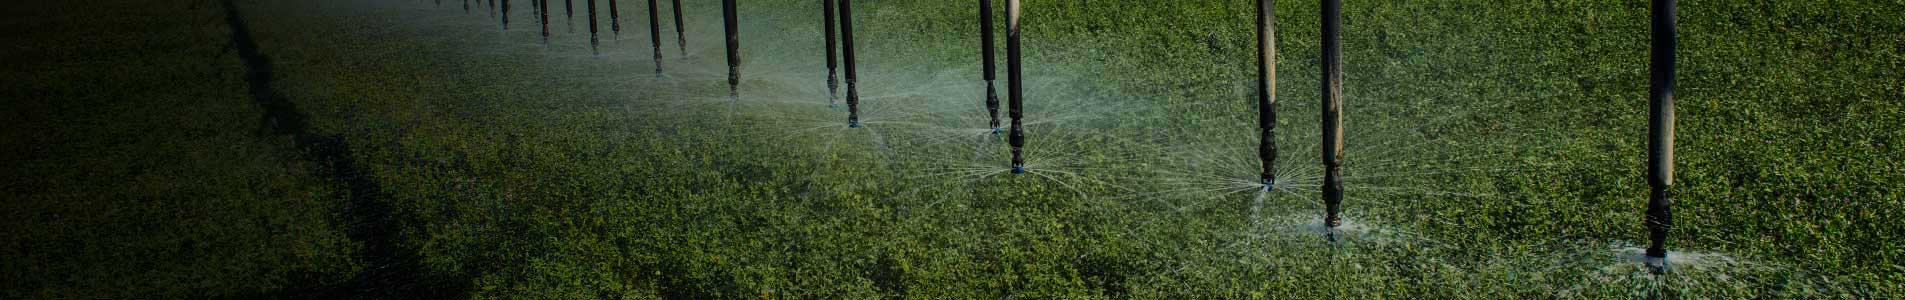 valley sprinklers for farm irrigation systems